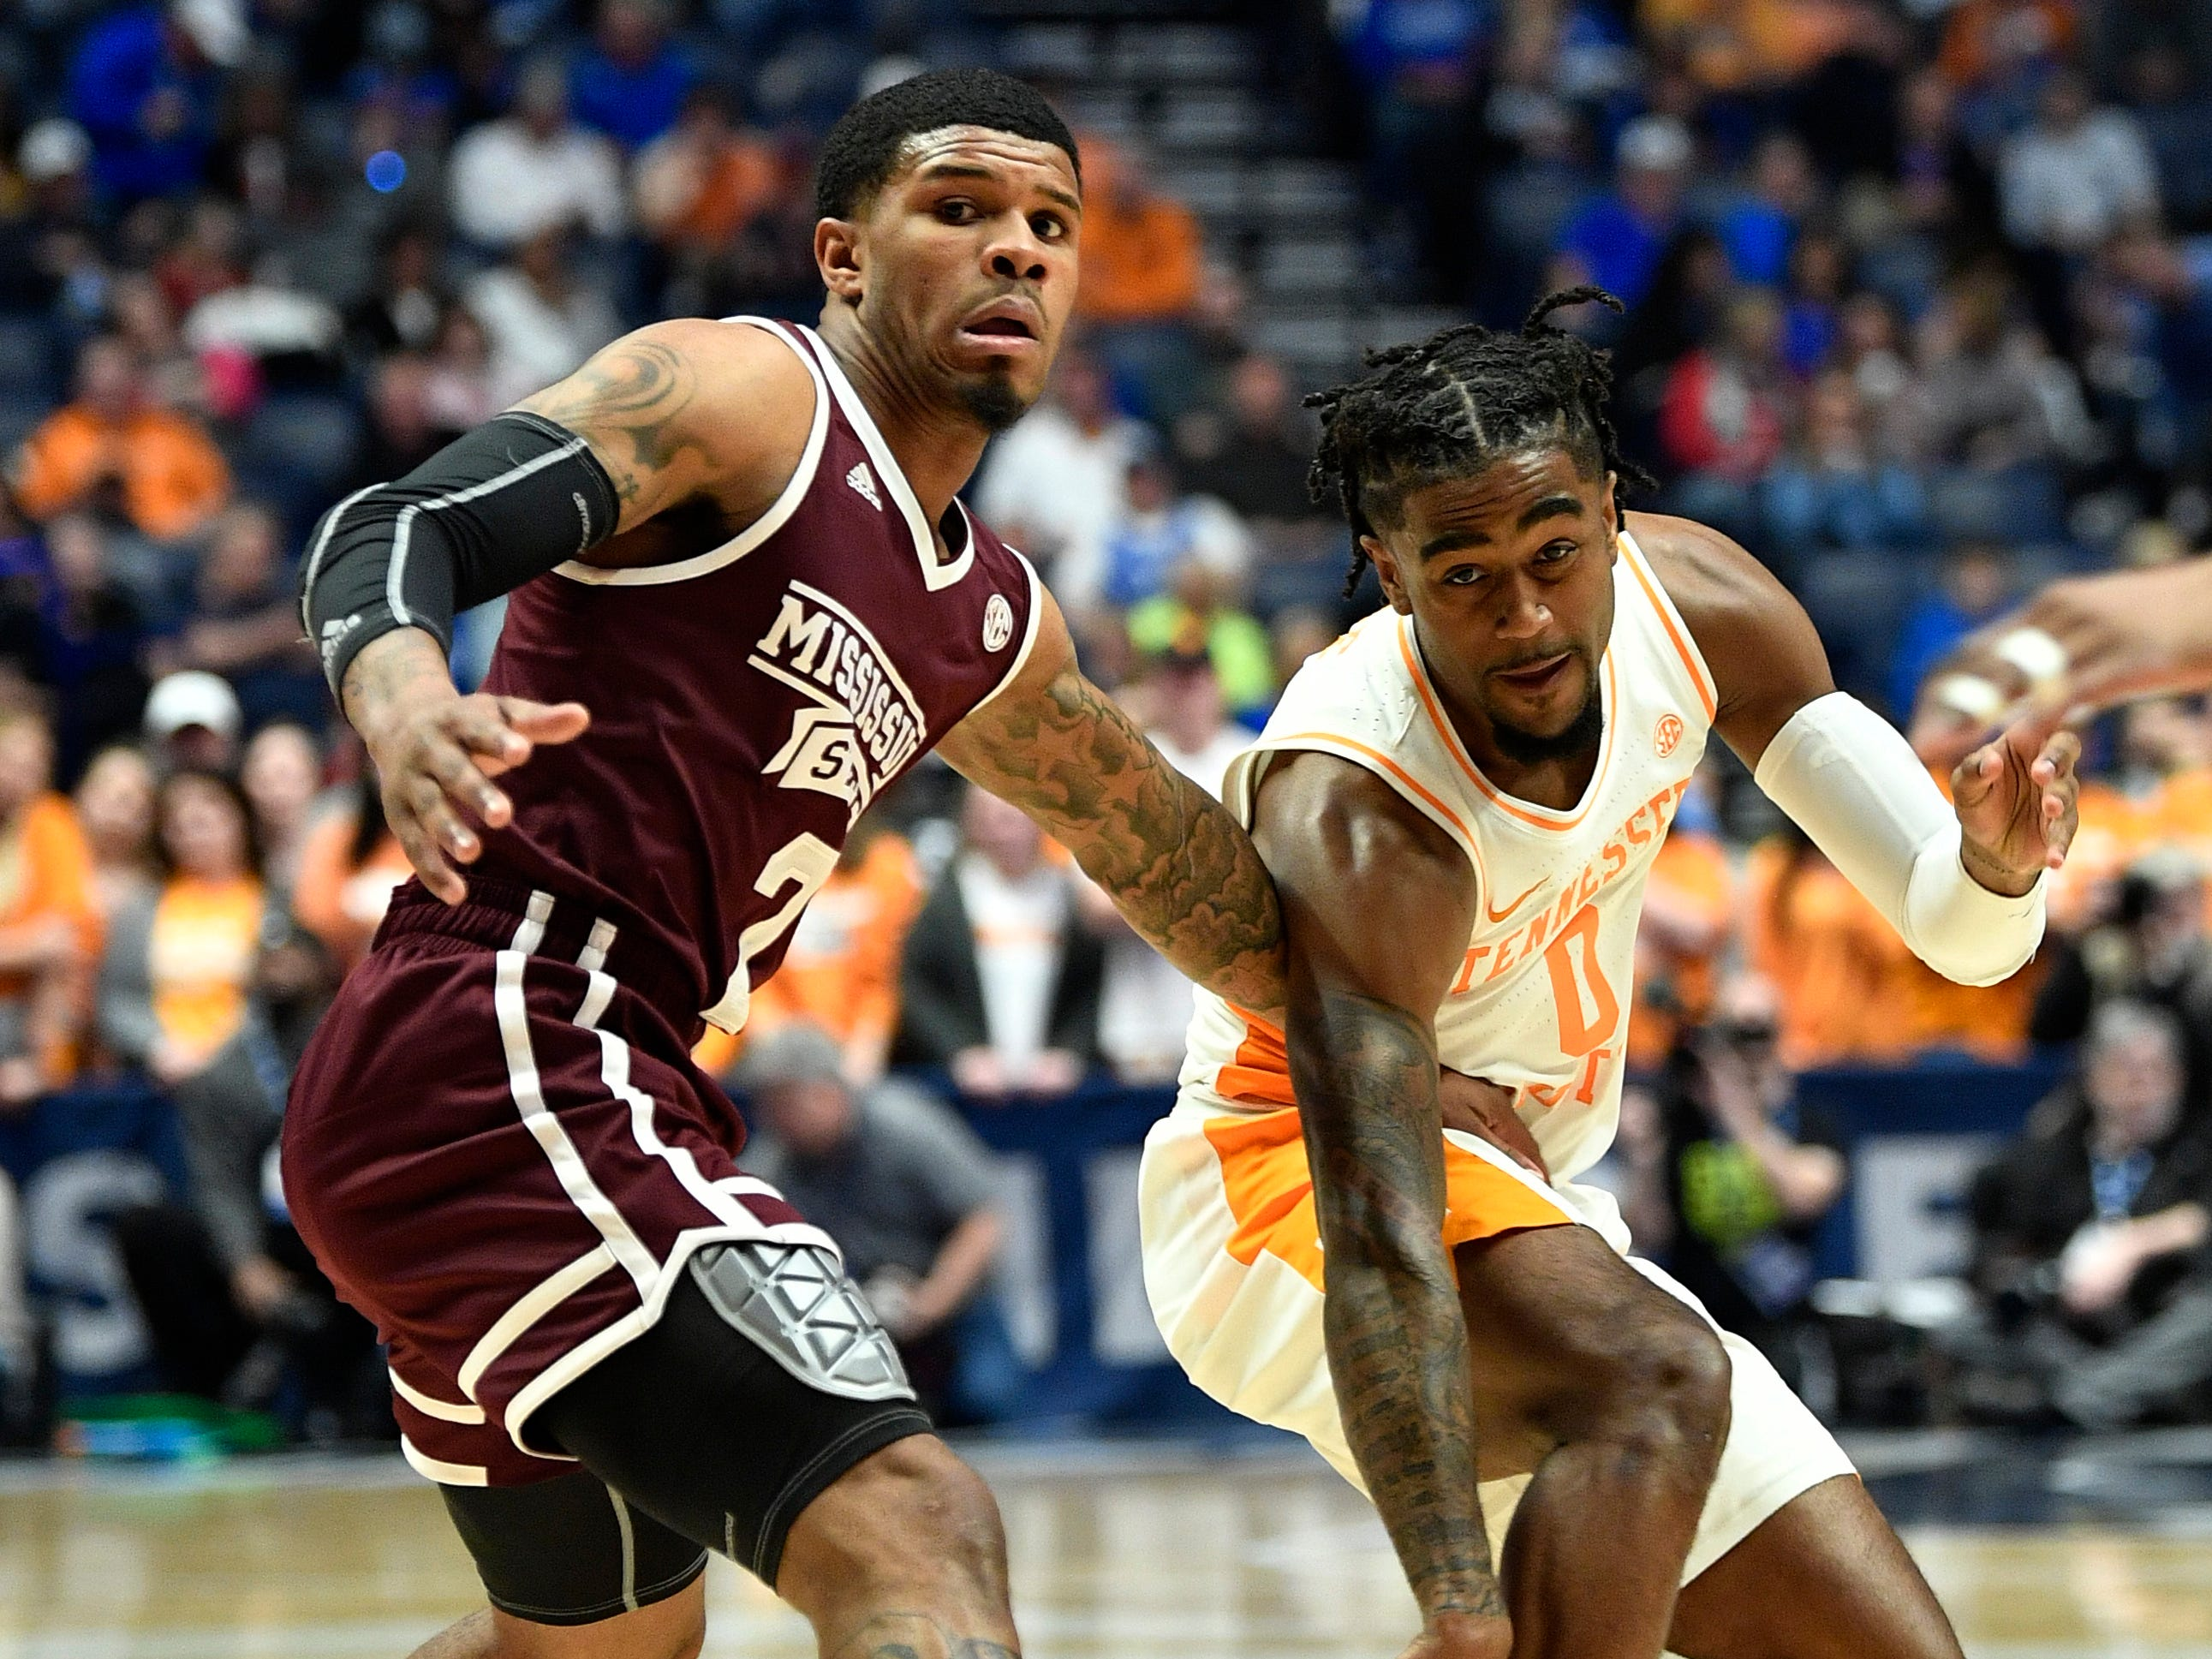 Mississippi State guard Lamar Peters (2) and Tennessee guard Jordan Bone (0) go after a loose ball during the first half of the SEC Men's Basketball Tournament game at Bridgestone Arena in Nashville, Tenn., Friday, March 15, 2019.